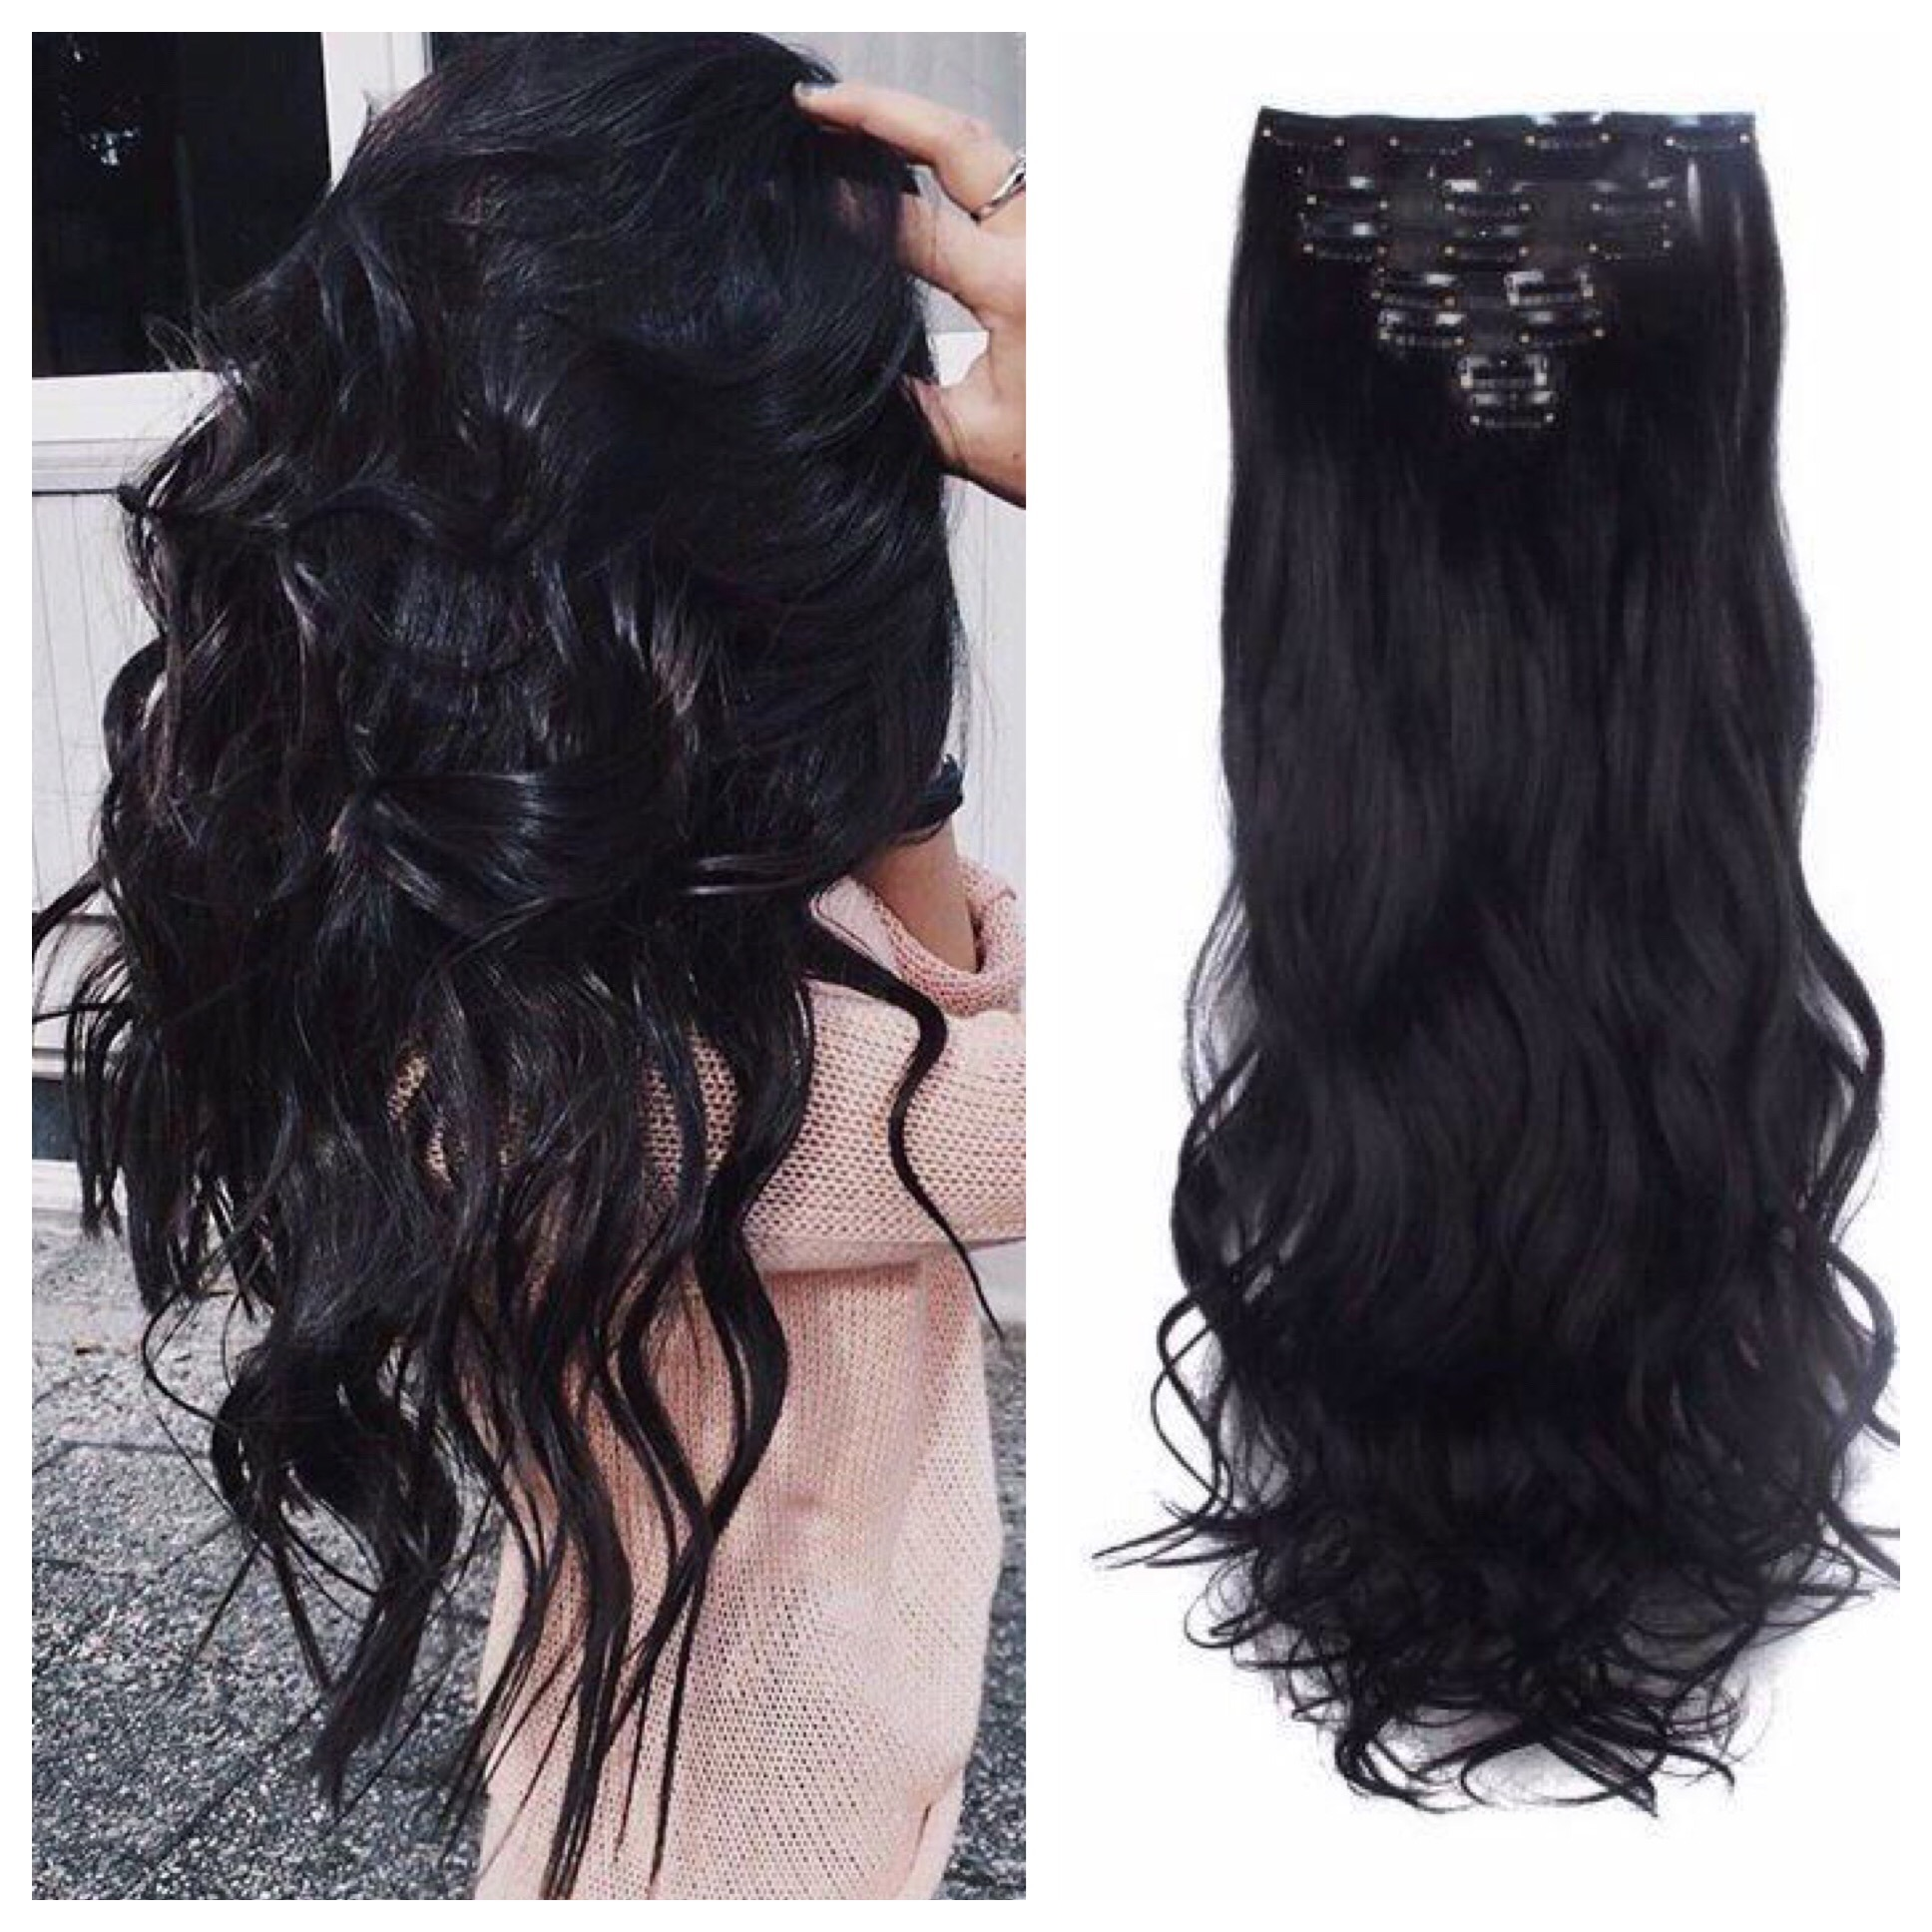 Jet Black Hair Extensions 24 Clip In Hair Weave 185g Curly Wavy